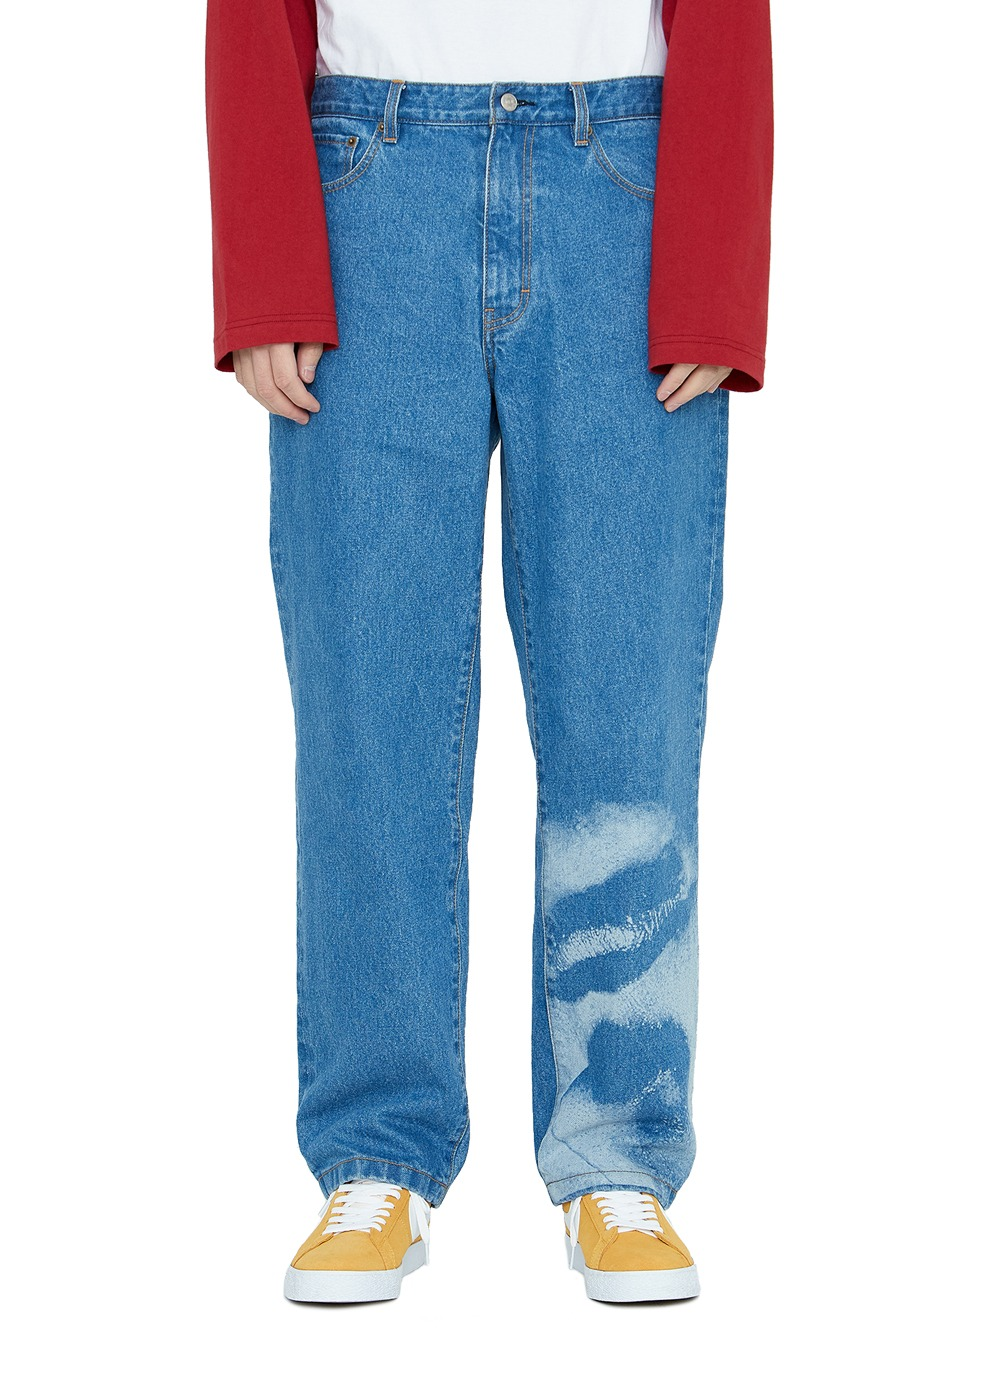 LMC LASER ENGRAVING FACE DENIM PANTS blue